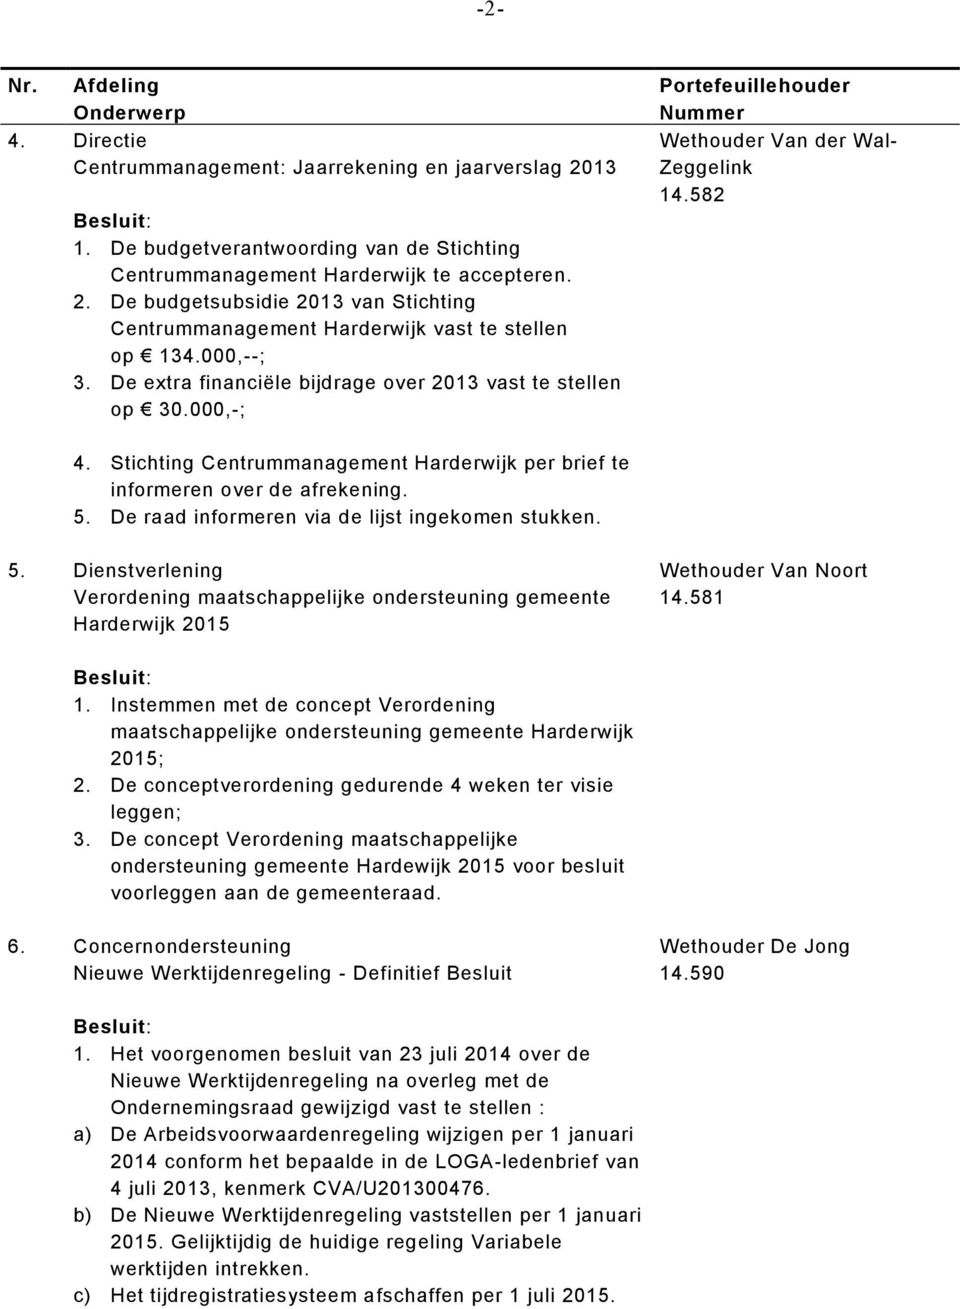 Stichting Centrummanagement Harderwijk per brief te informeren over de afrekening. 5. De raad informeren via de lijst ingekomen stukken. 5. Dienstverlening Verordening maatschappelijke ondersteuning gemeente Harderwijk 2015 14.